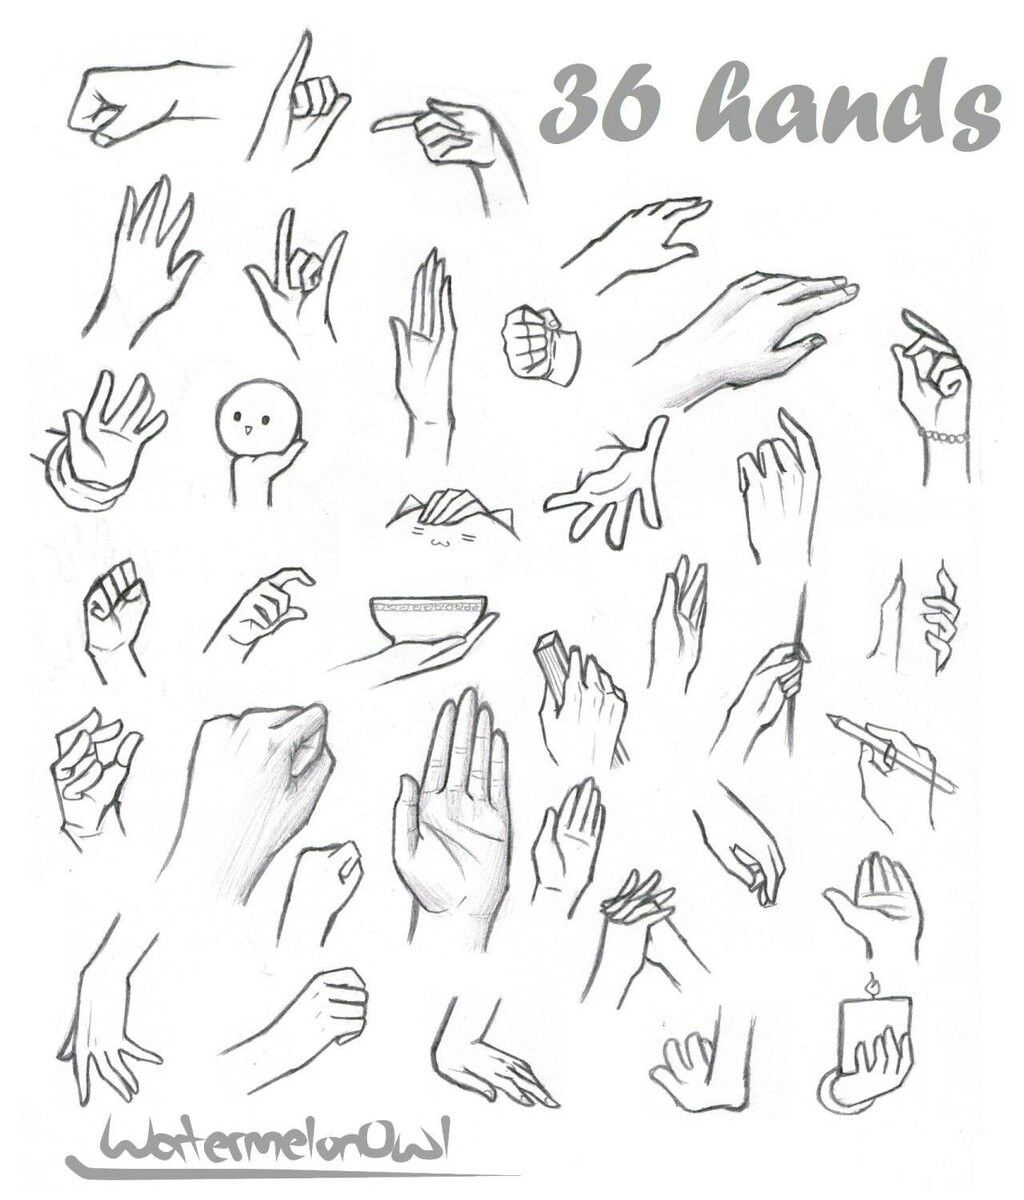 pin by blackpenguin on art pinterest hands drawings and drawing